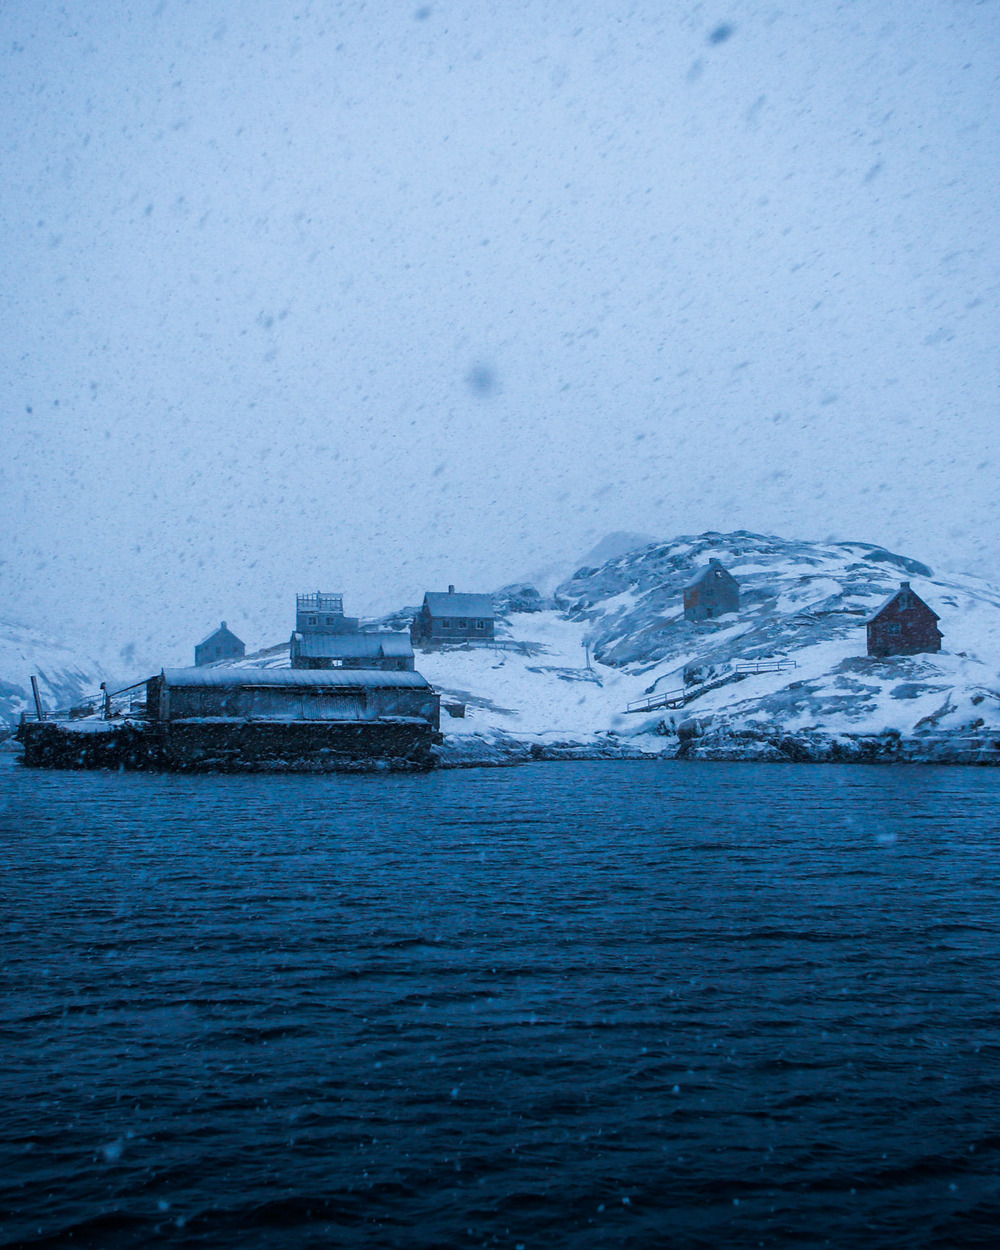 Kangeq's old wharf and houses appear ghostlike through a late winter snowstorm.